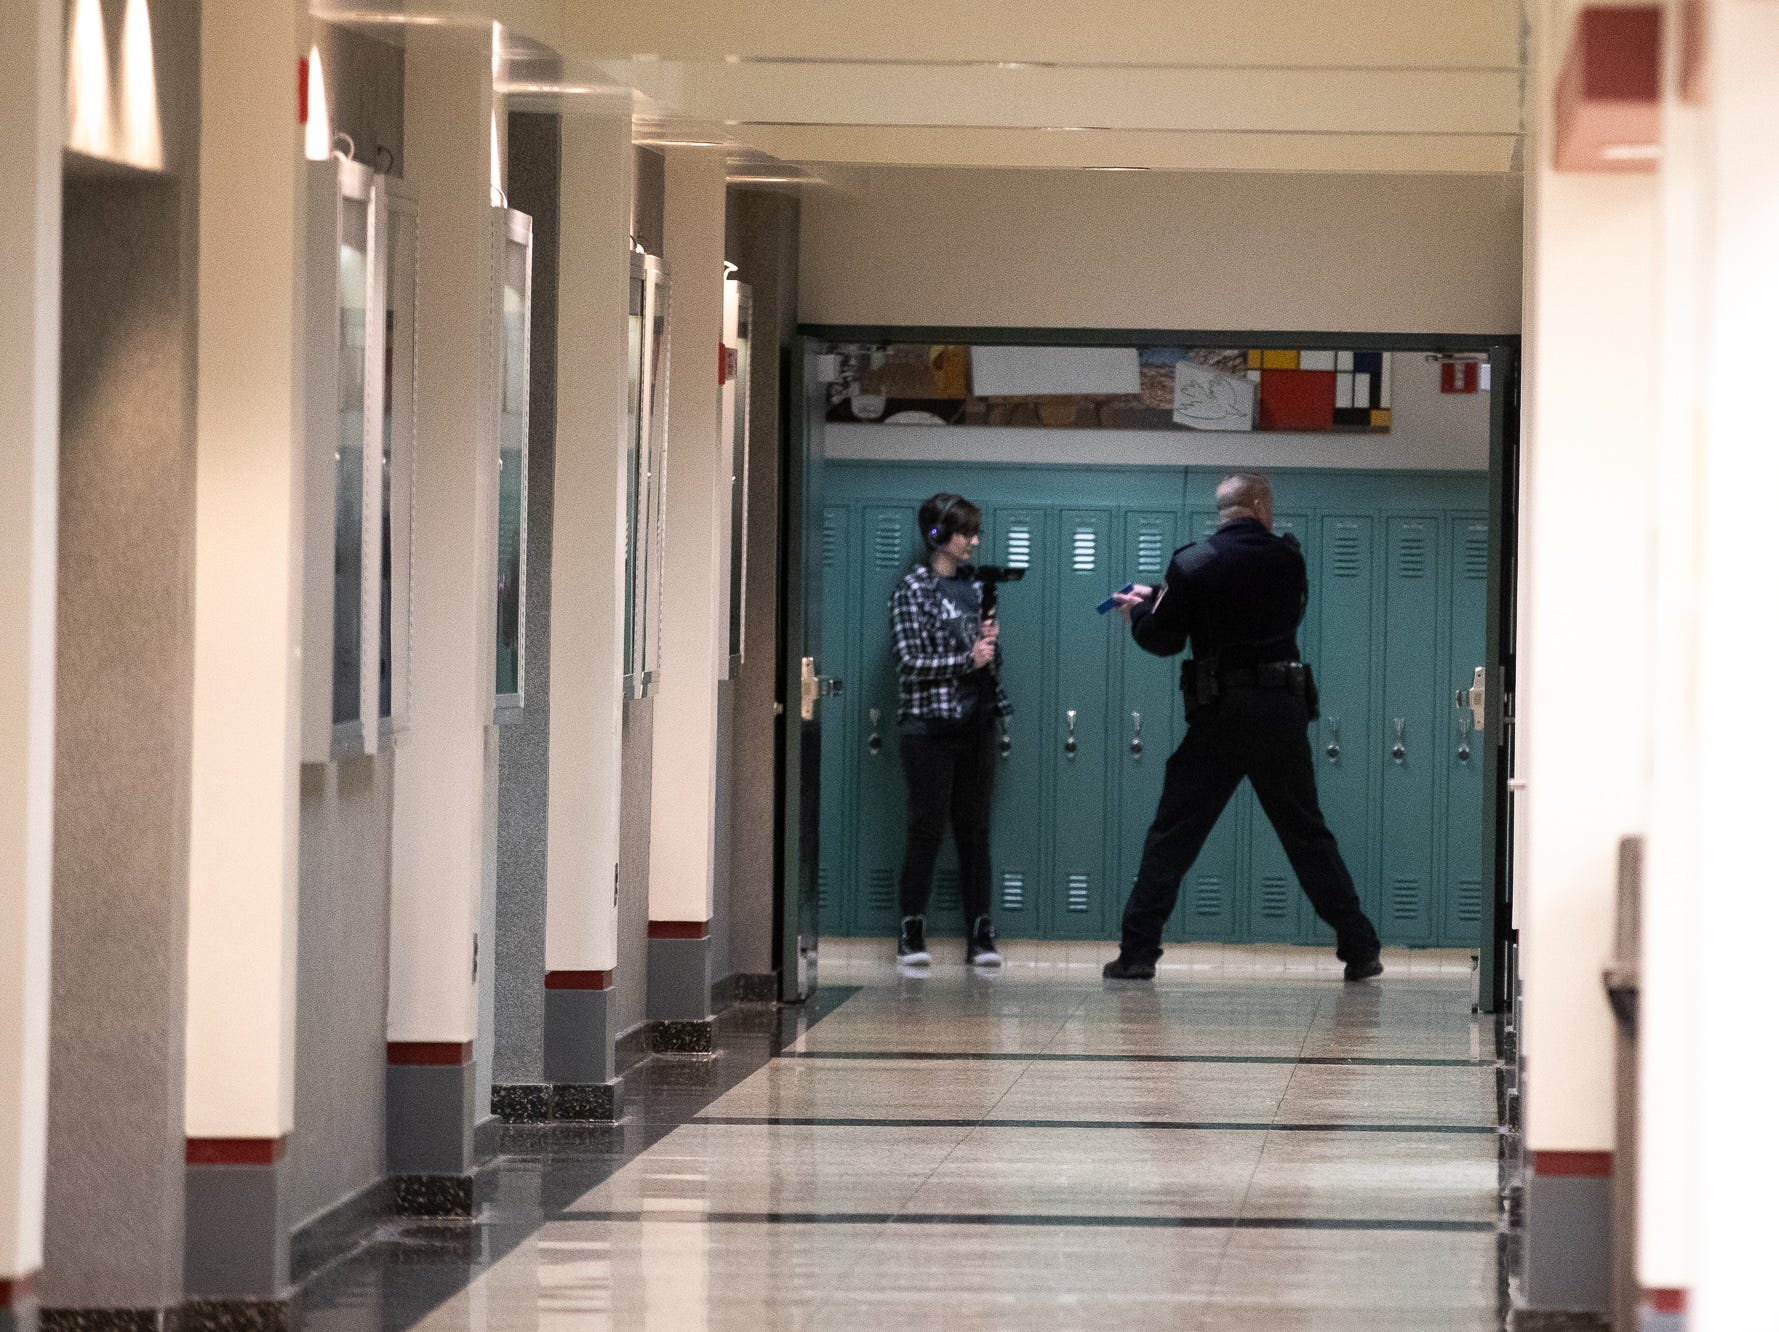 Police officers clear hallways during an active shooter drill at South Western High School, Monday, Jan. 21, 2019, in Penn Township. The drill simulated multiple scenarios involving an active shooter, allowing school security and local law enforcement agencies a hands-on opportunity to drill on engaging an active shooter while also giving school staff experience with how real world scenarios could unfold.